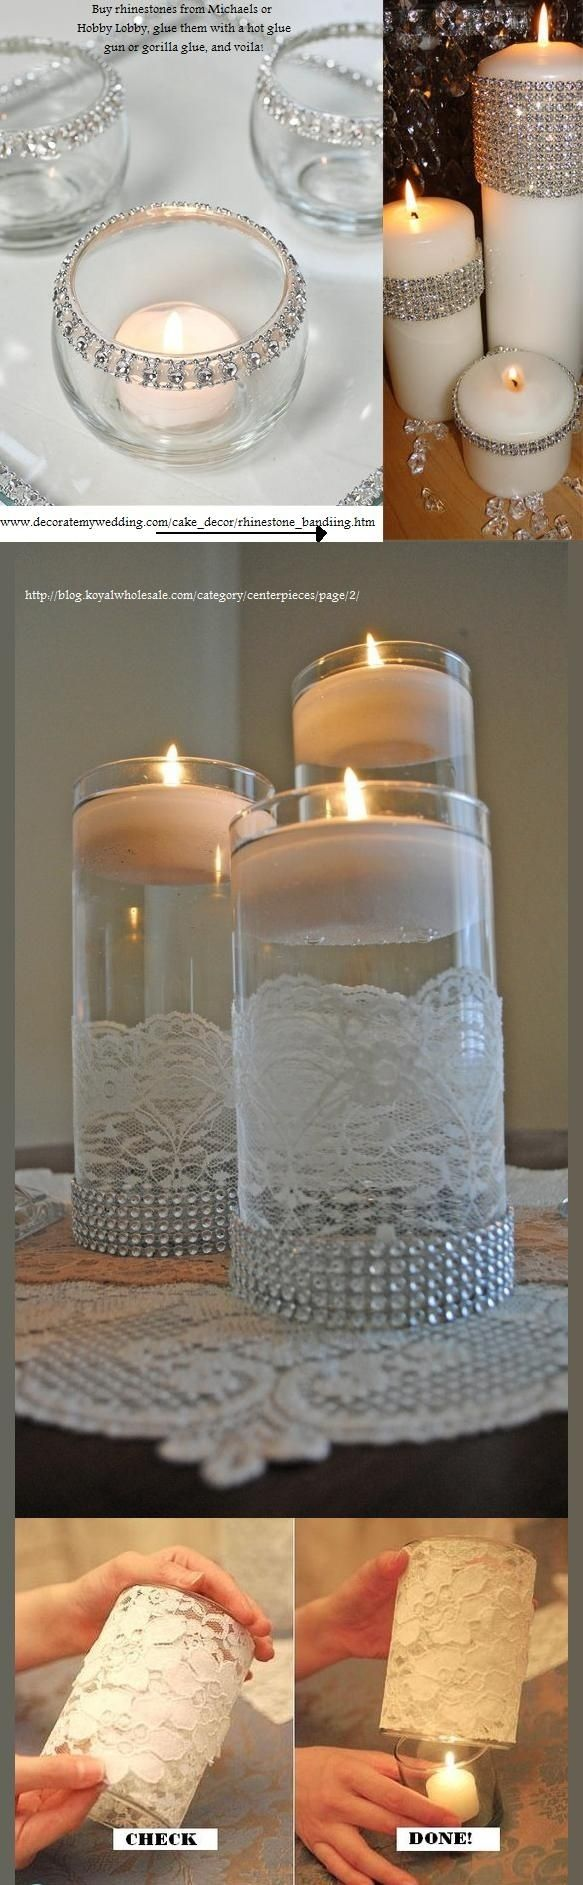 Centerpieces, Candles, Vases, Lace, Diamonds, Rhinestones, Ribbon or pearls by marina